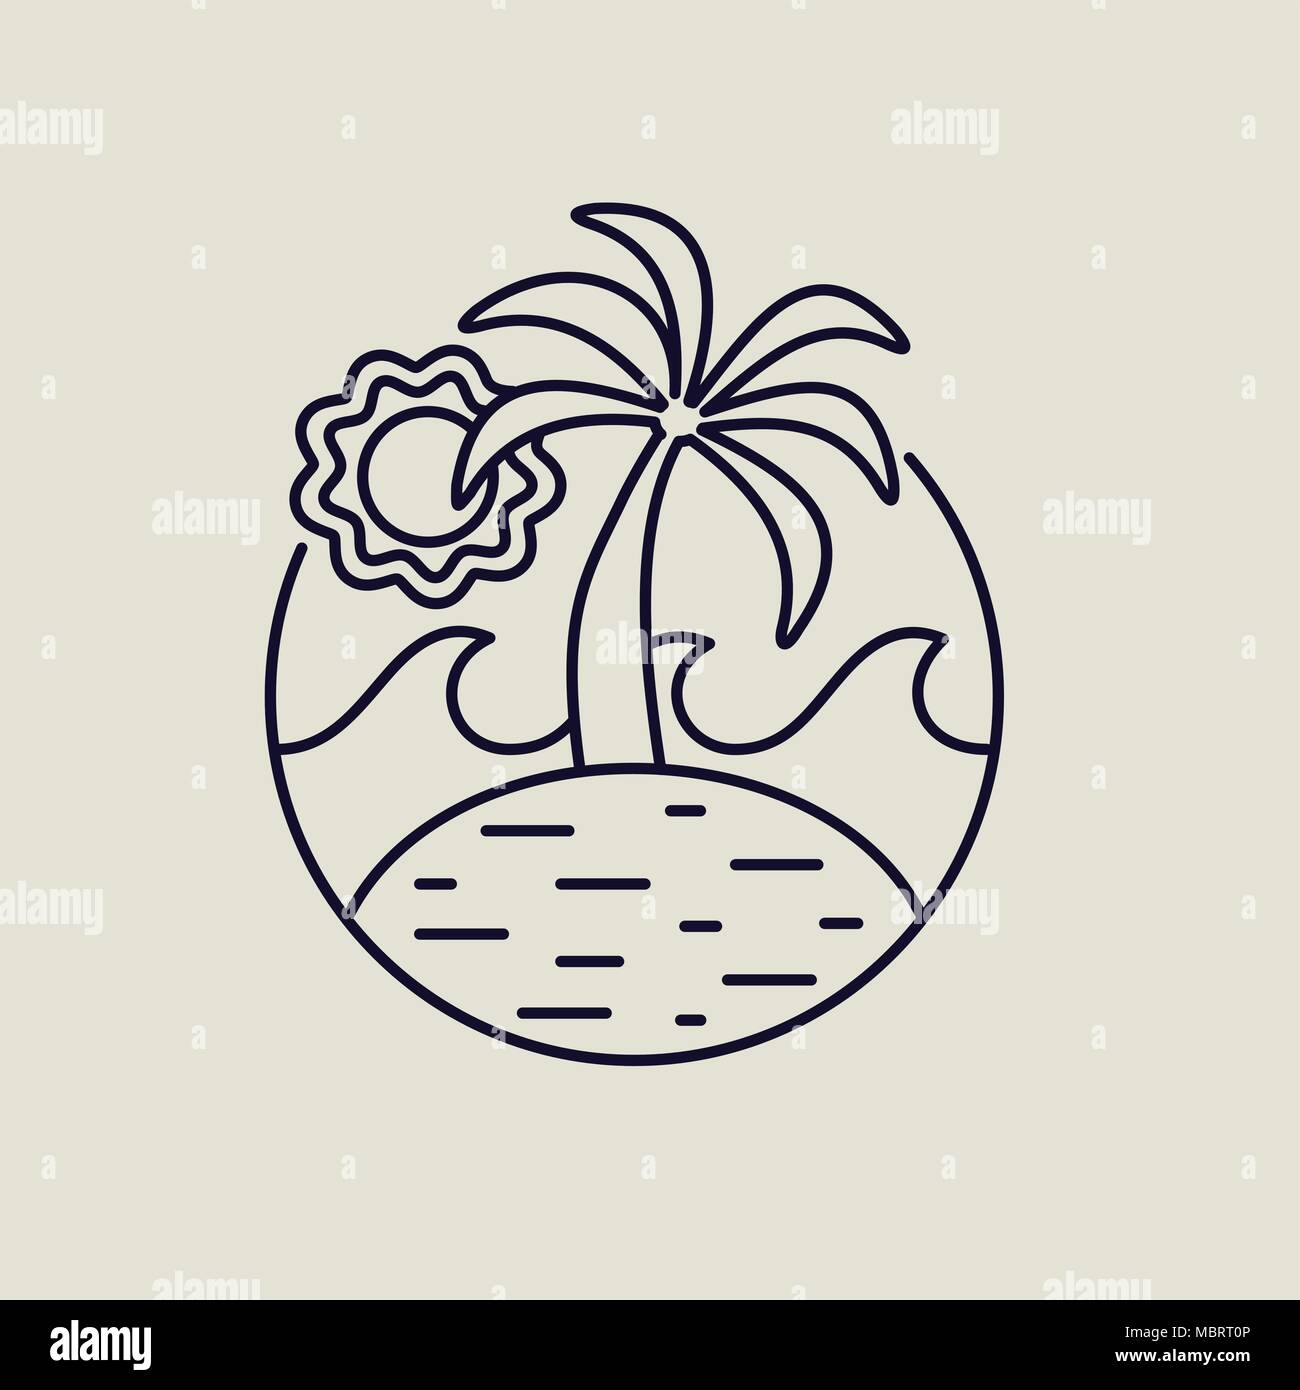 Tropical island line art icon in modern flat style. Summer beach illustration with palm trees, ocean waves and sun. EPS10 vector. - Stock Vector